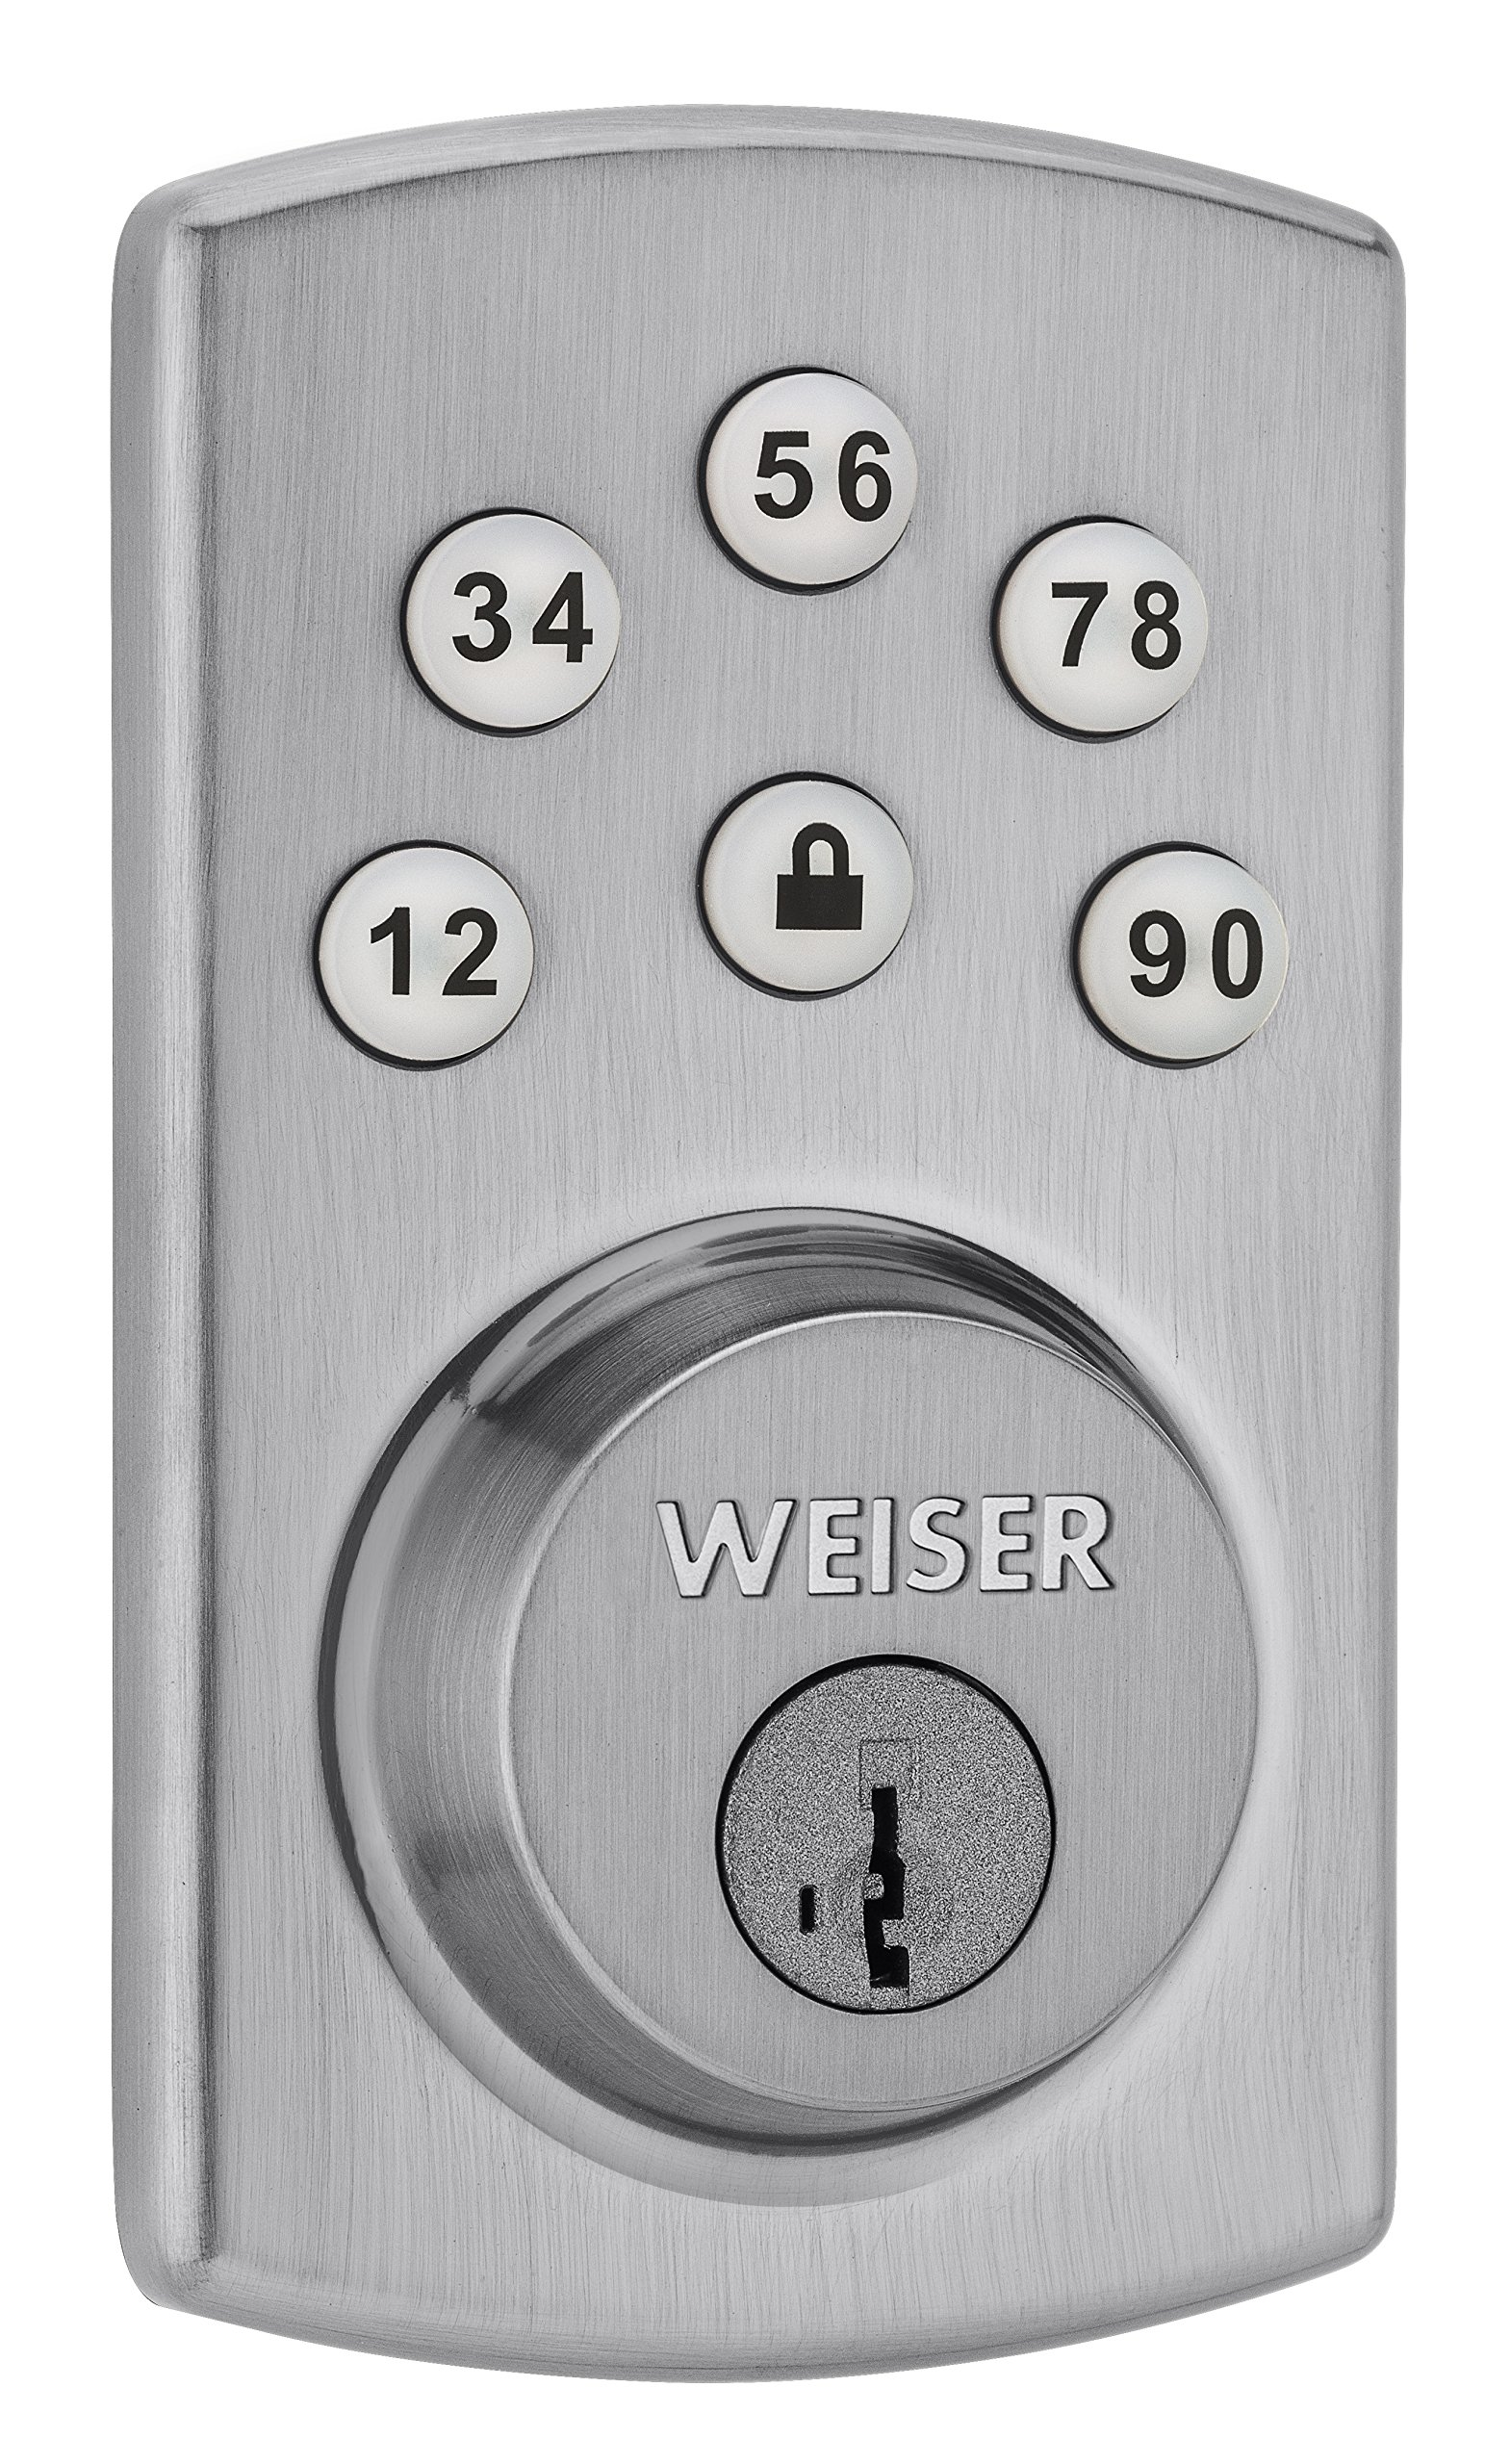 Weiser Powerbolt 2.0 Electronic Deadbolt Featuring SmartKey, Exterior Door Lock with Keypad, Satin Chrome (9GED14600-104) product image